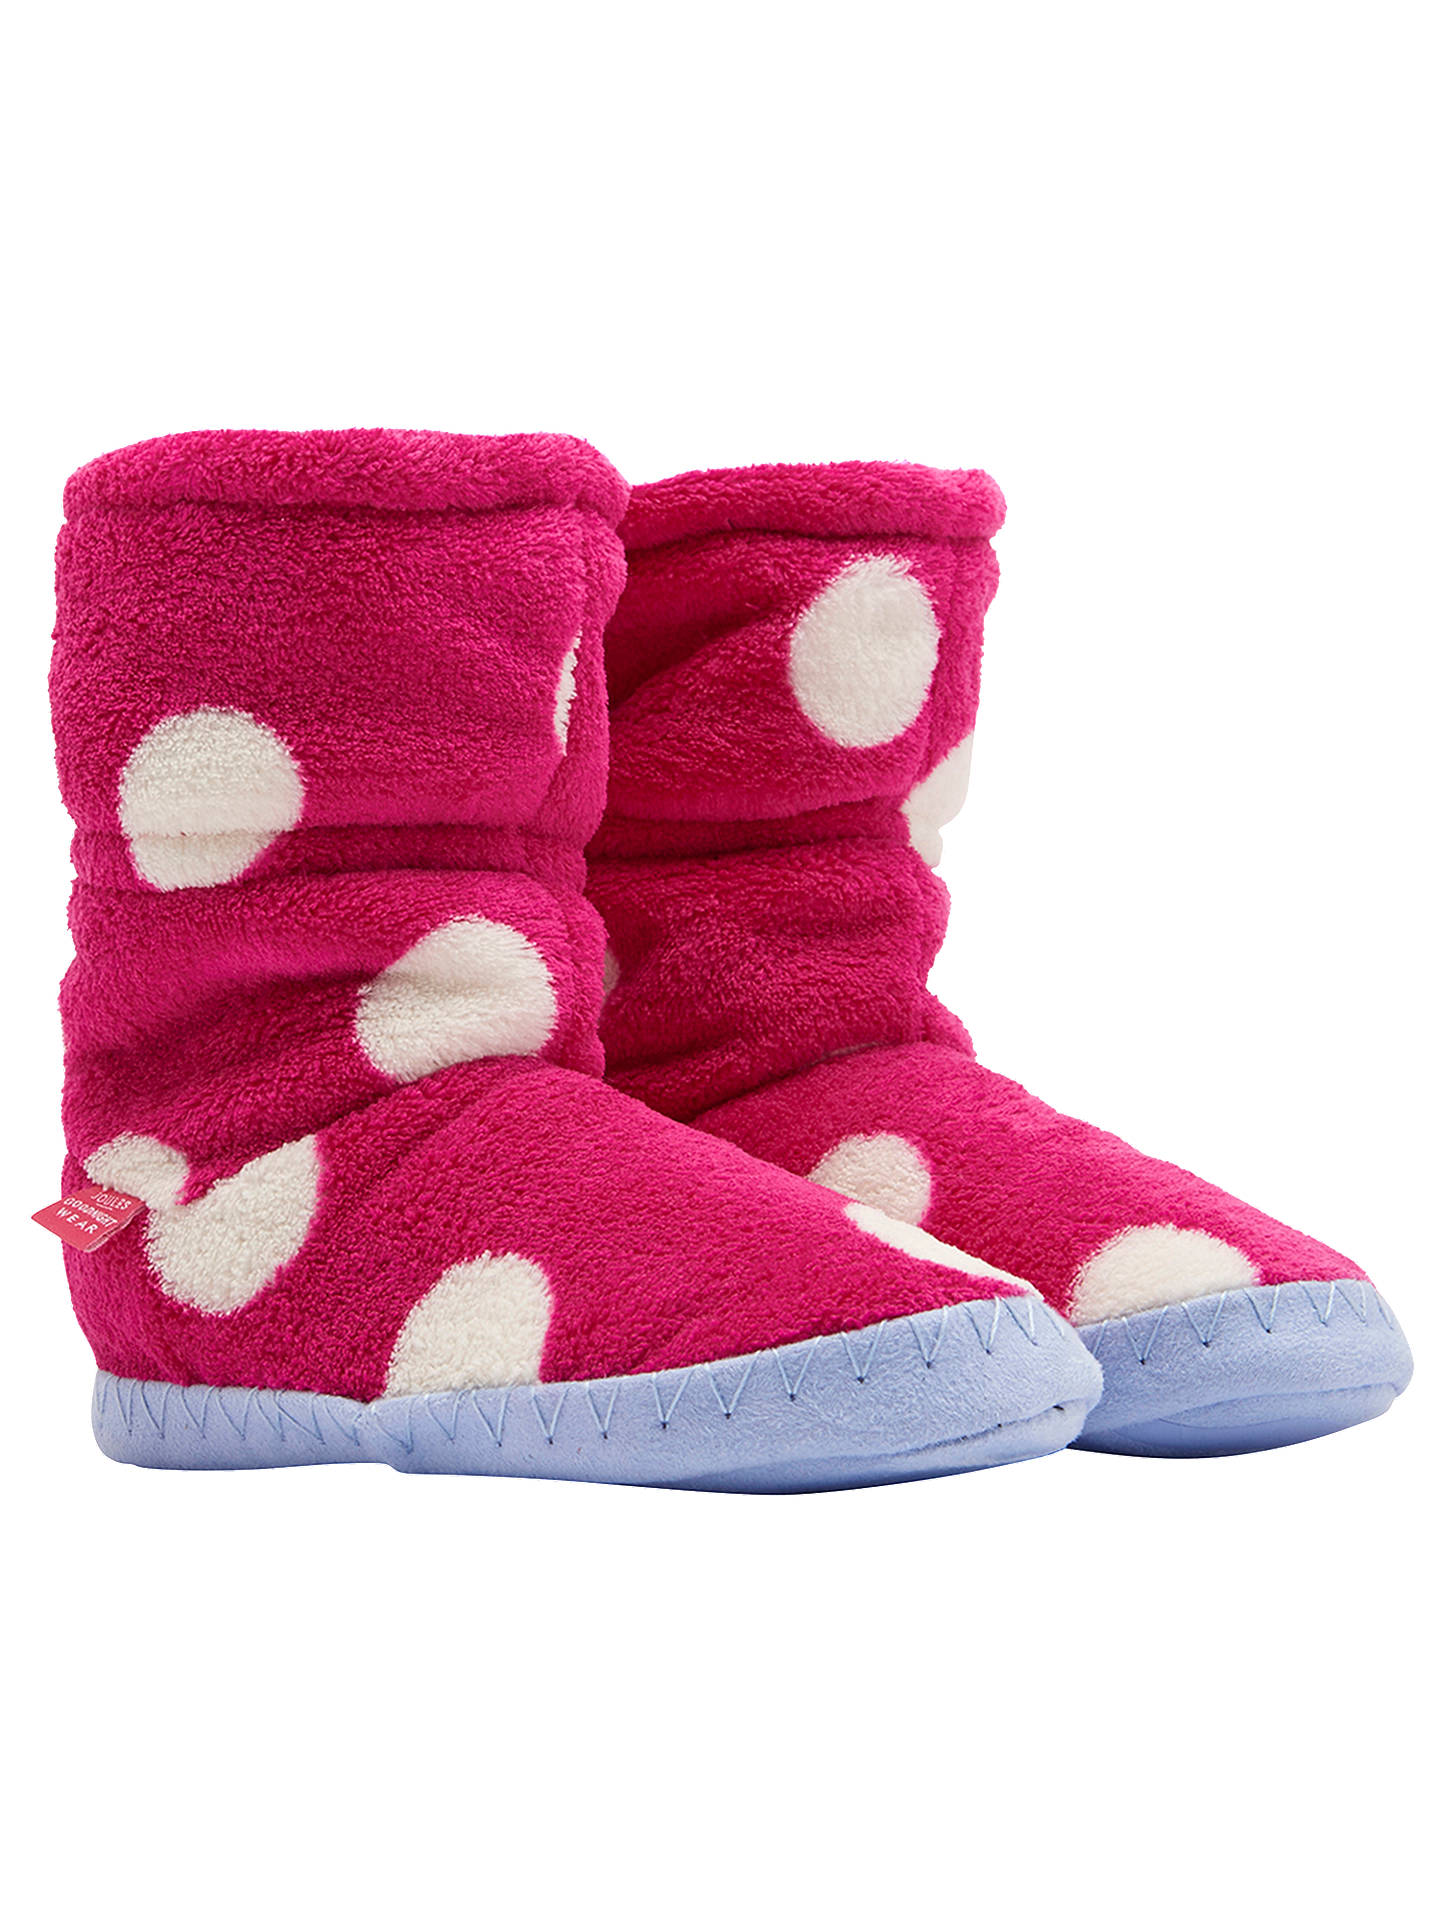 BuyBaby Joule Padabout Ankle Slippers, Raspberry Rose, S Online at johnlewis.com